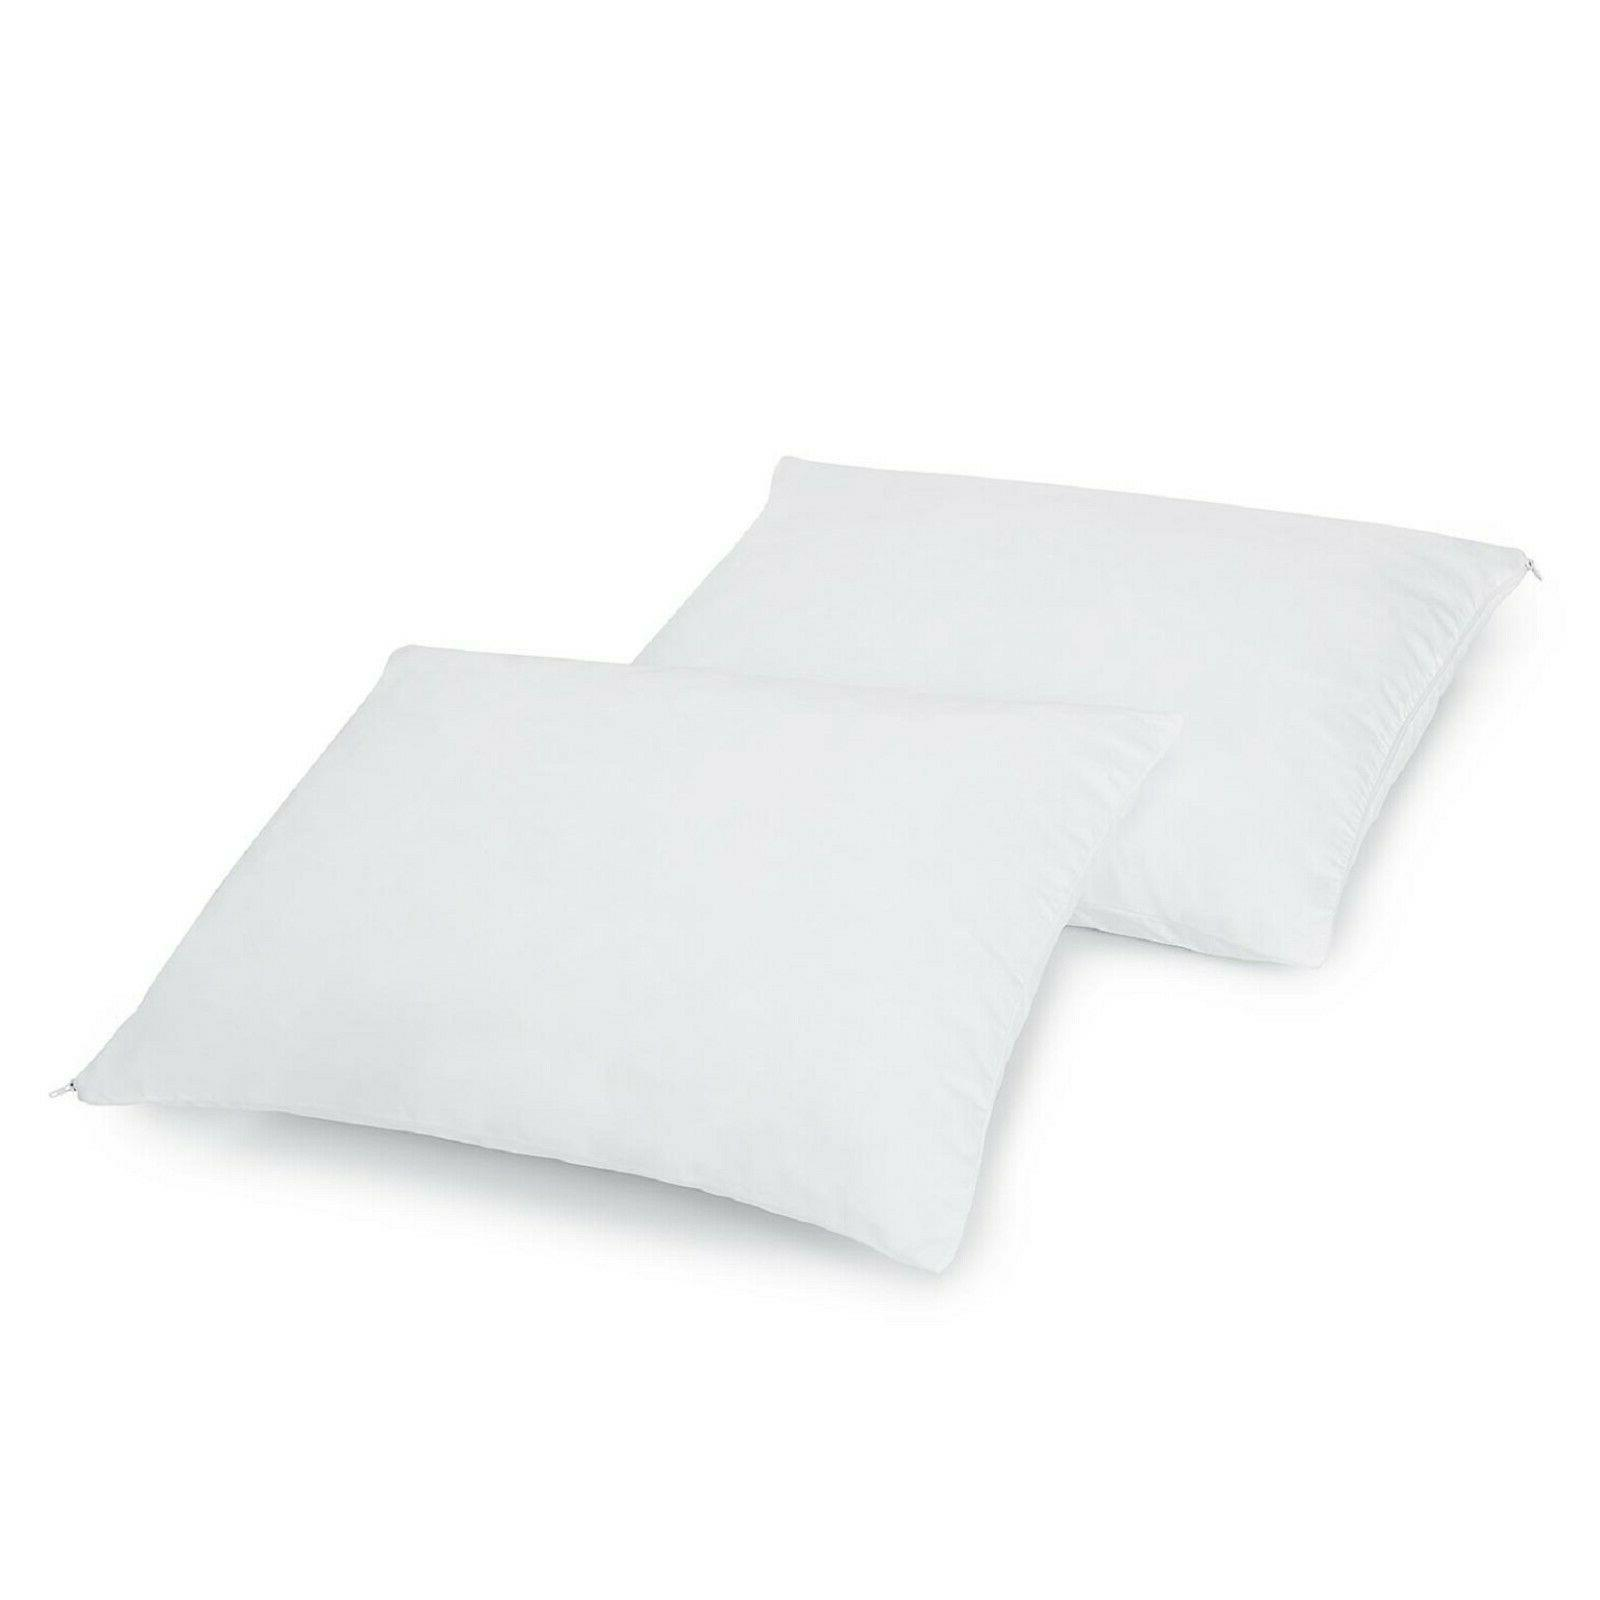 Serta Gel Foam Cluster Classic Bed Pillows 2-pack Free Shipping